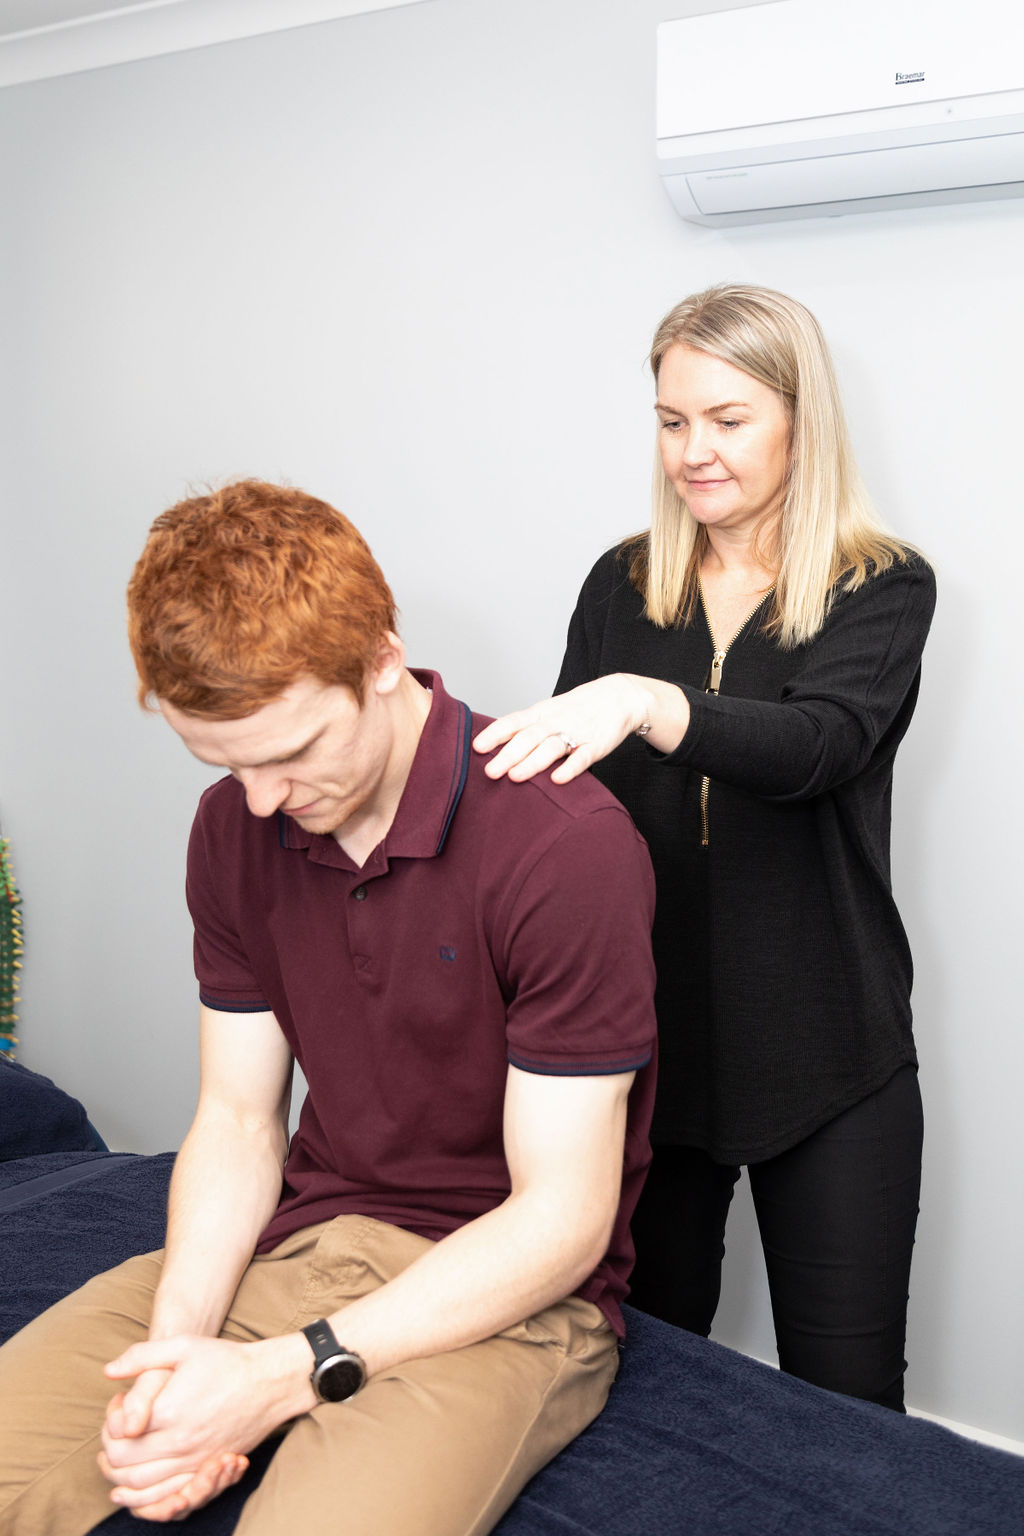 Posture pain relief